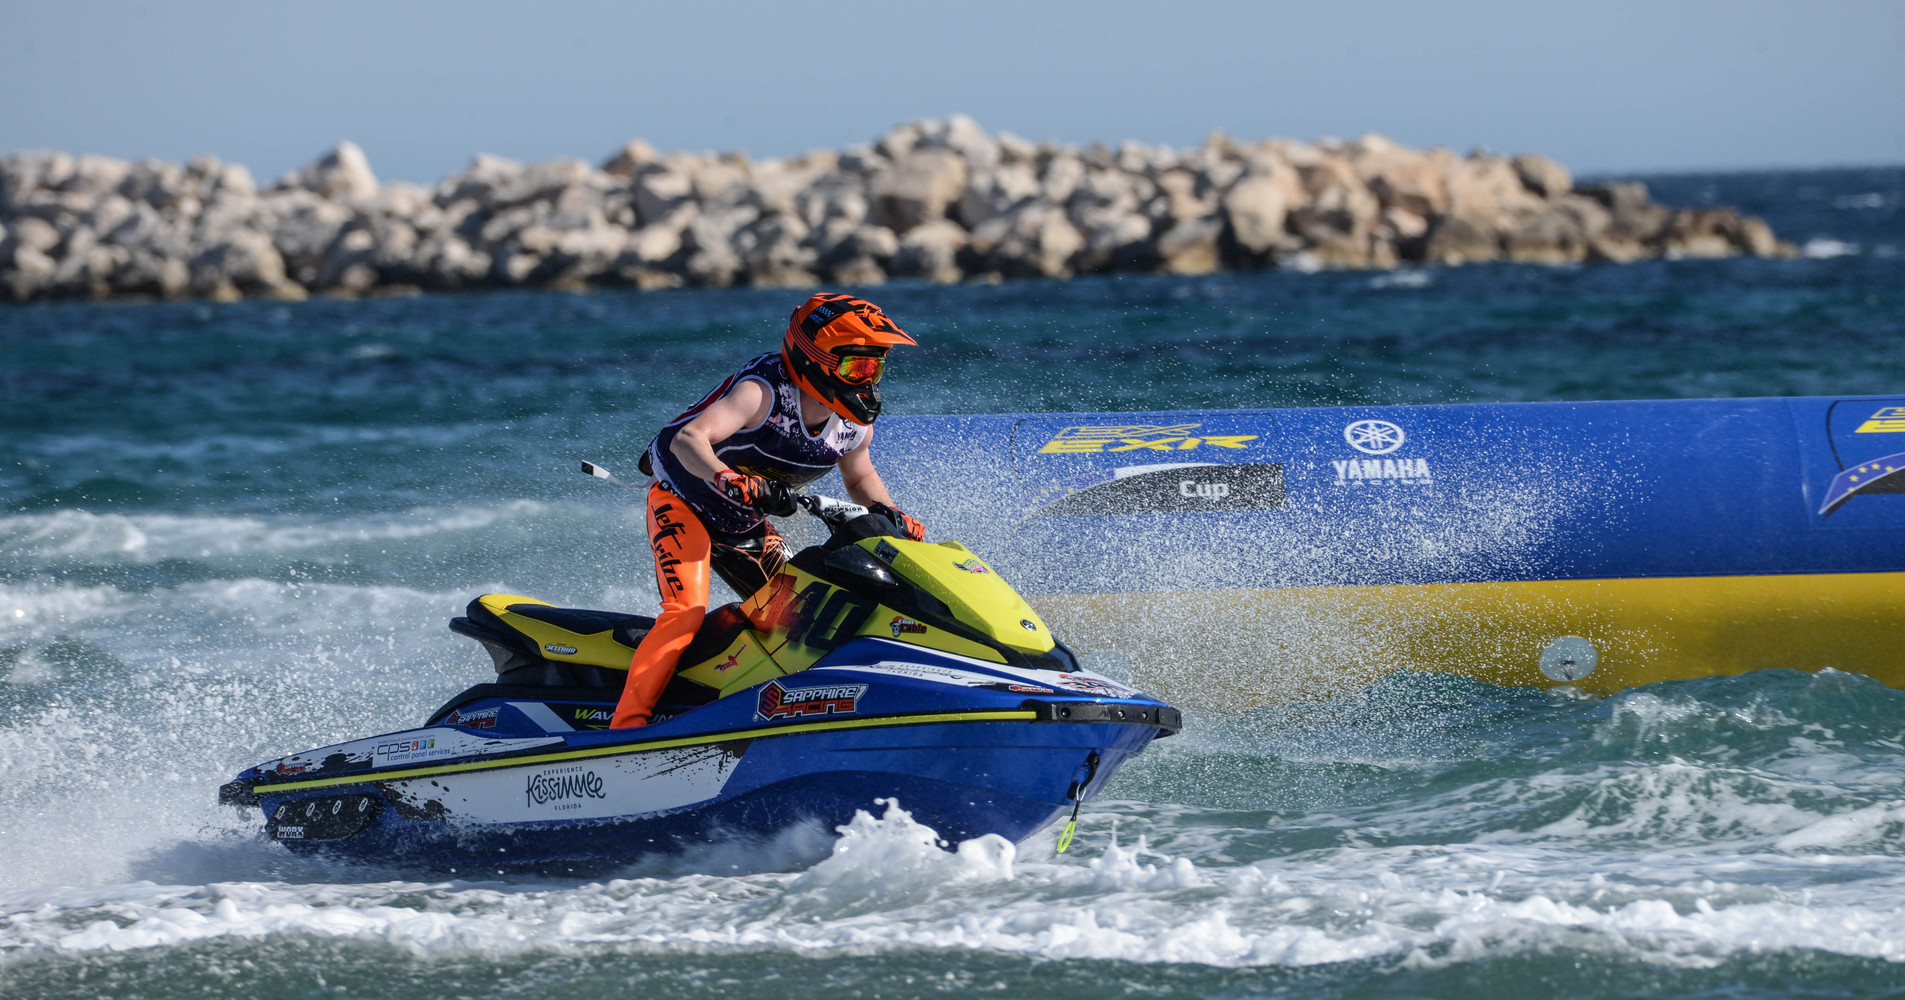 Yamaha Motor Europe has chosen Powerboat P1 through the P1 Jetcross championship for promoting their EX and EXR models